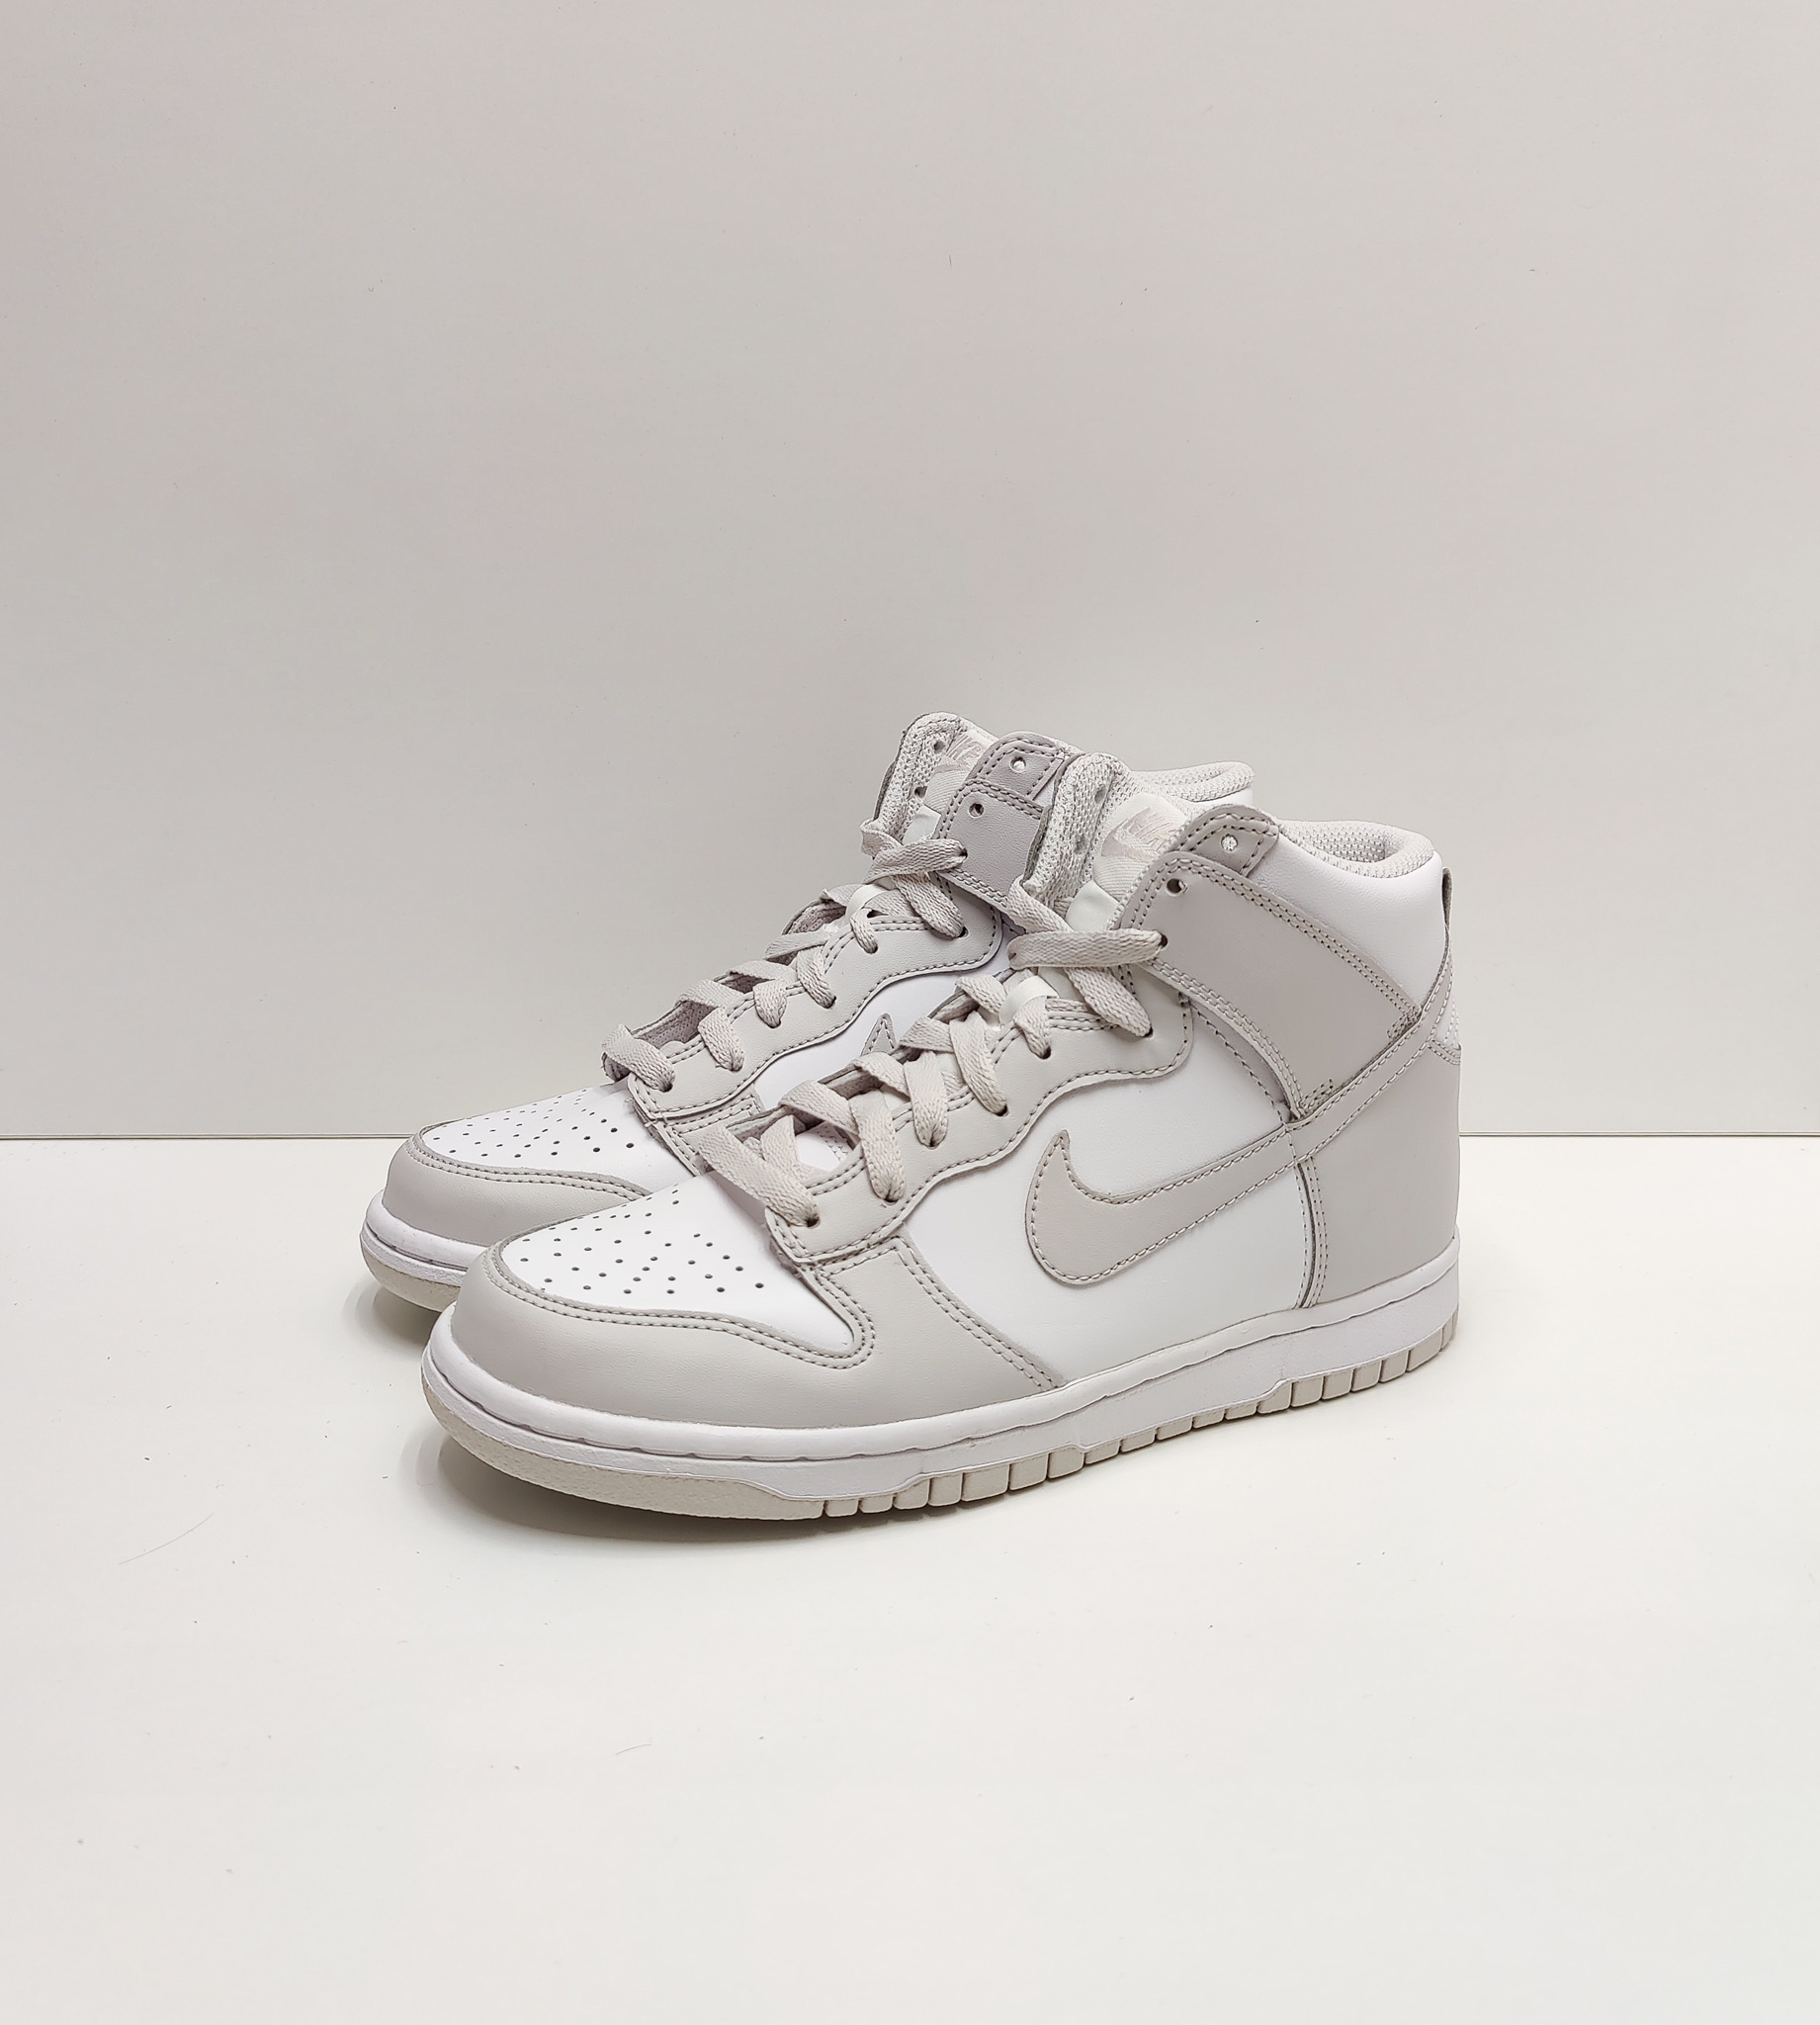 Nike Dunk High Retro White Vast Grey (GS)